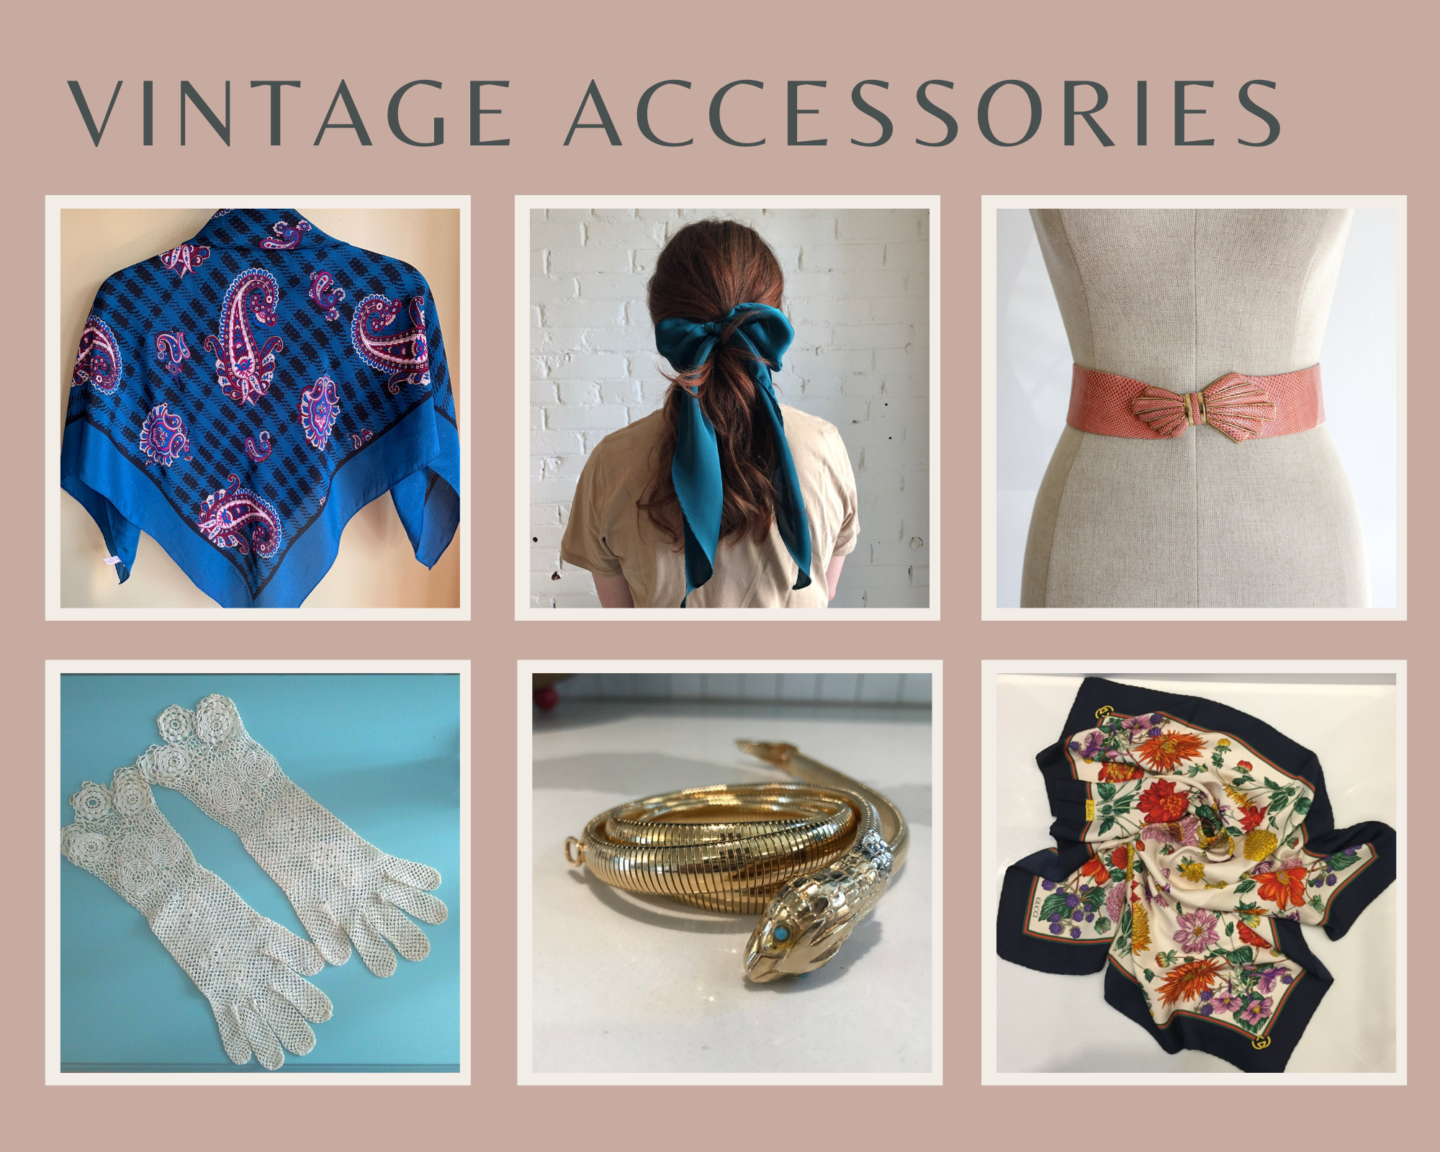 vintage accessories gift guide